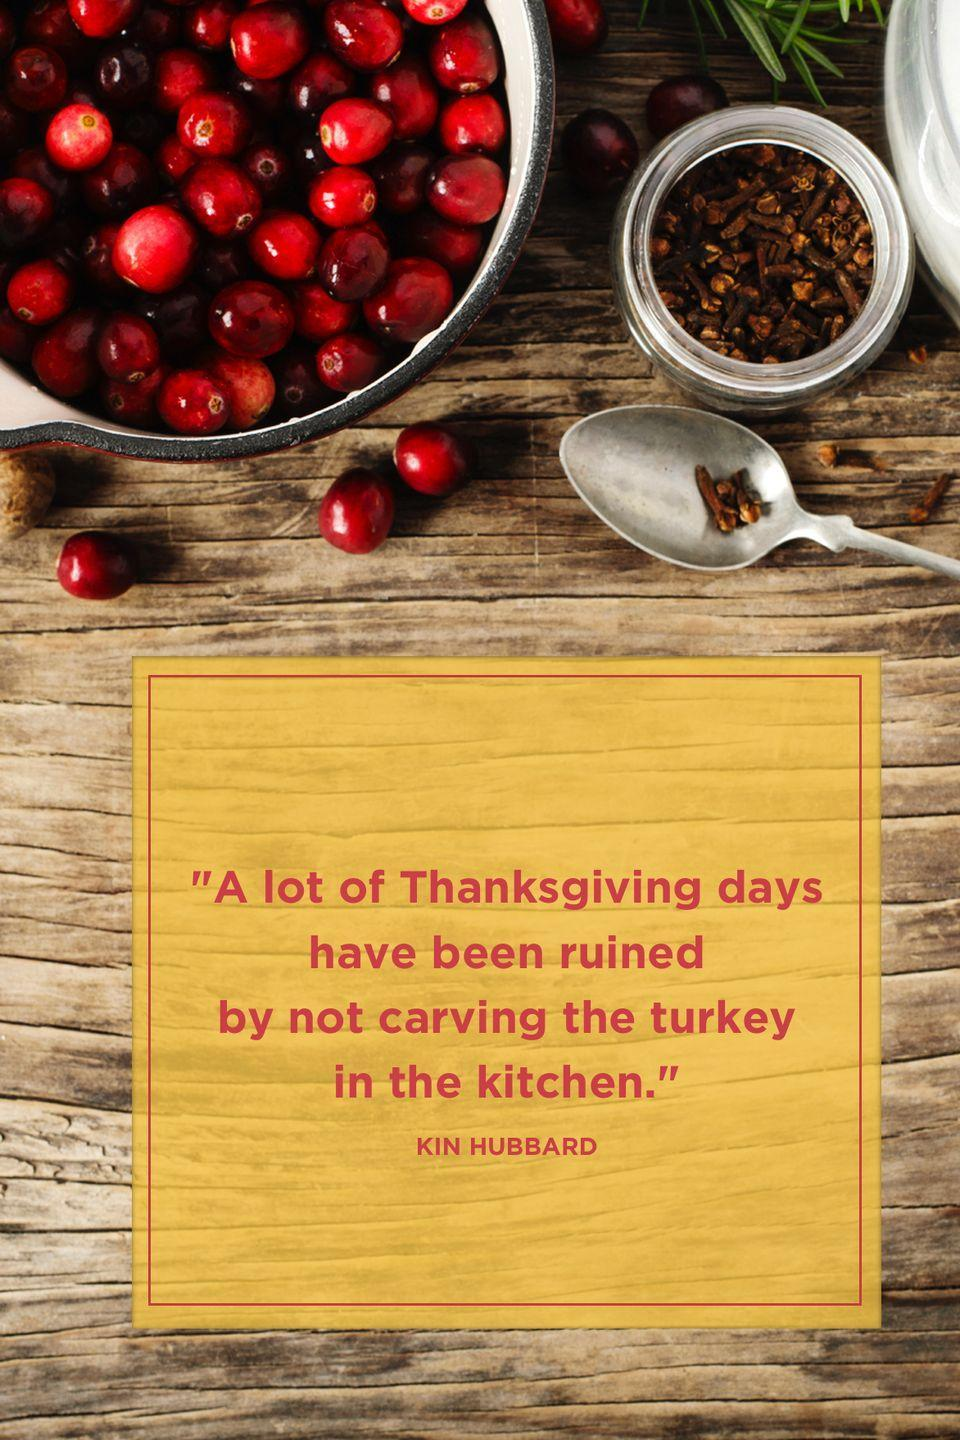 "<p>""A lot of Thanksgiving days have been ruined by not carving the turkey in the kitchen."" </p>"